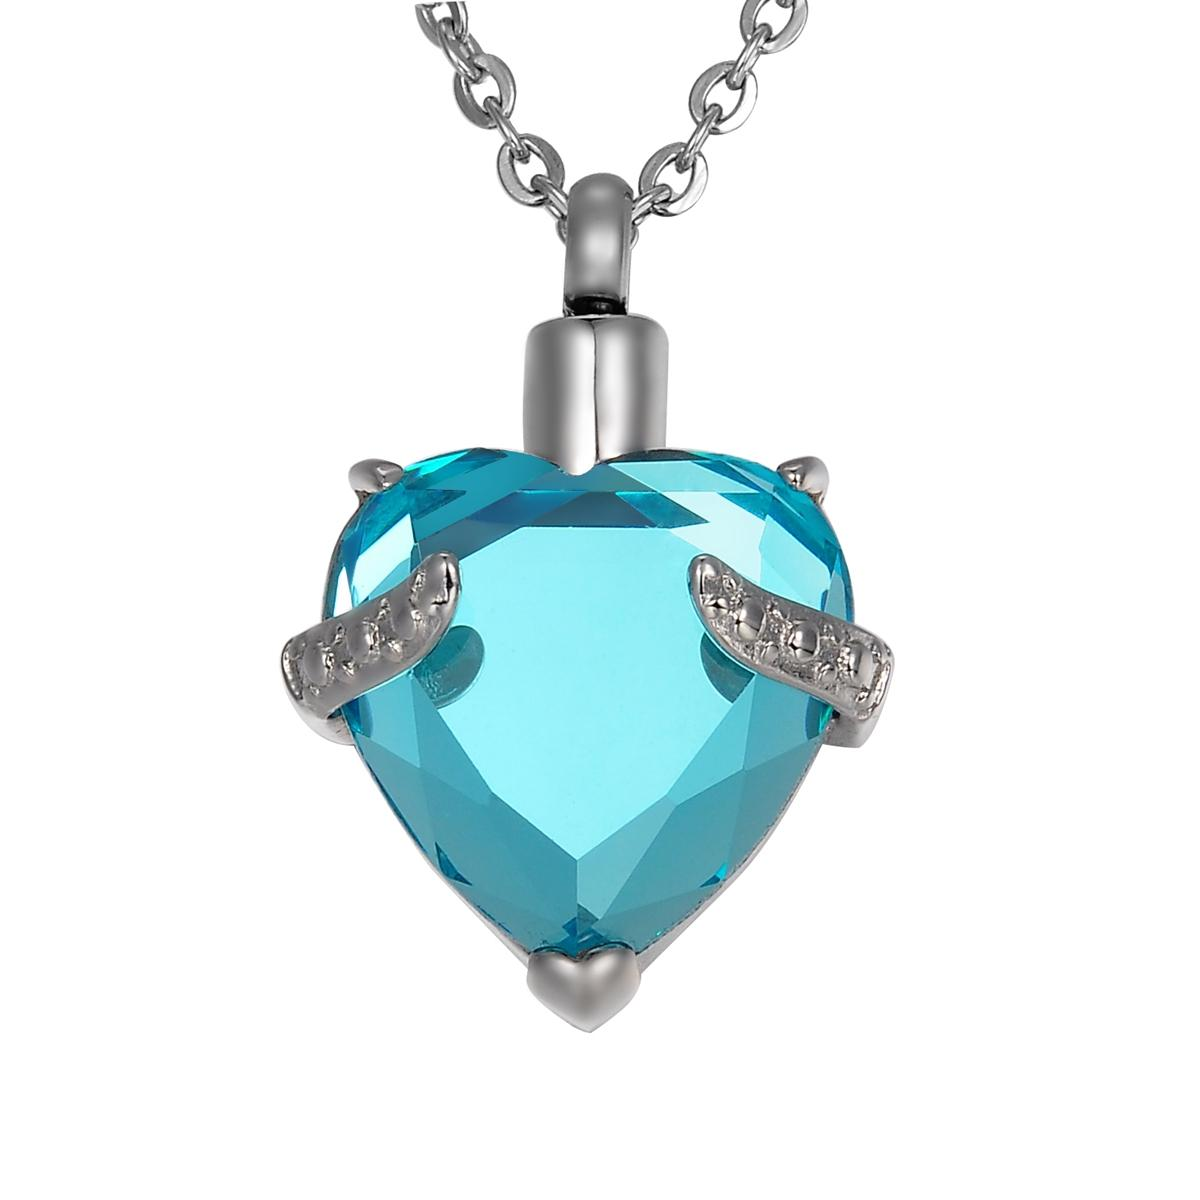 Memorial jewelry for ashes online memorial jewelry for cremation lily urn pendant necklaces blue diamond cremation jewelry heart memorial keepsake holder pendant for ashes with gift bag mozeypictures Images